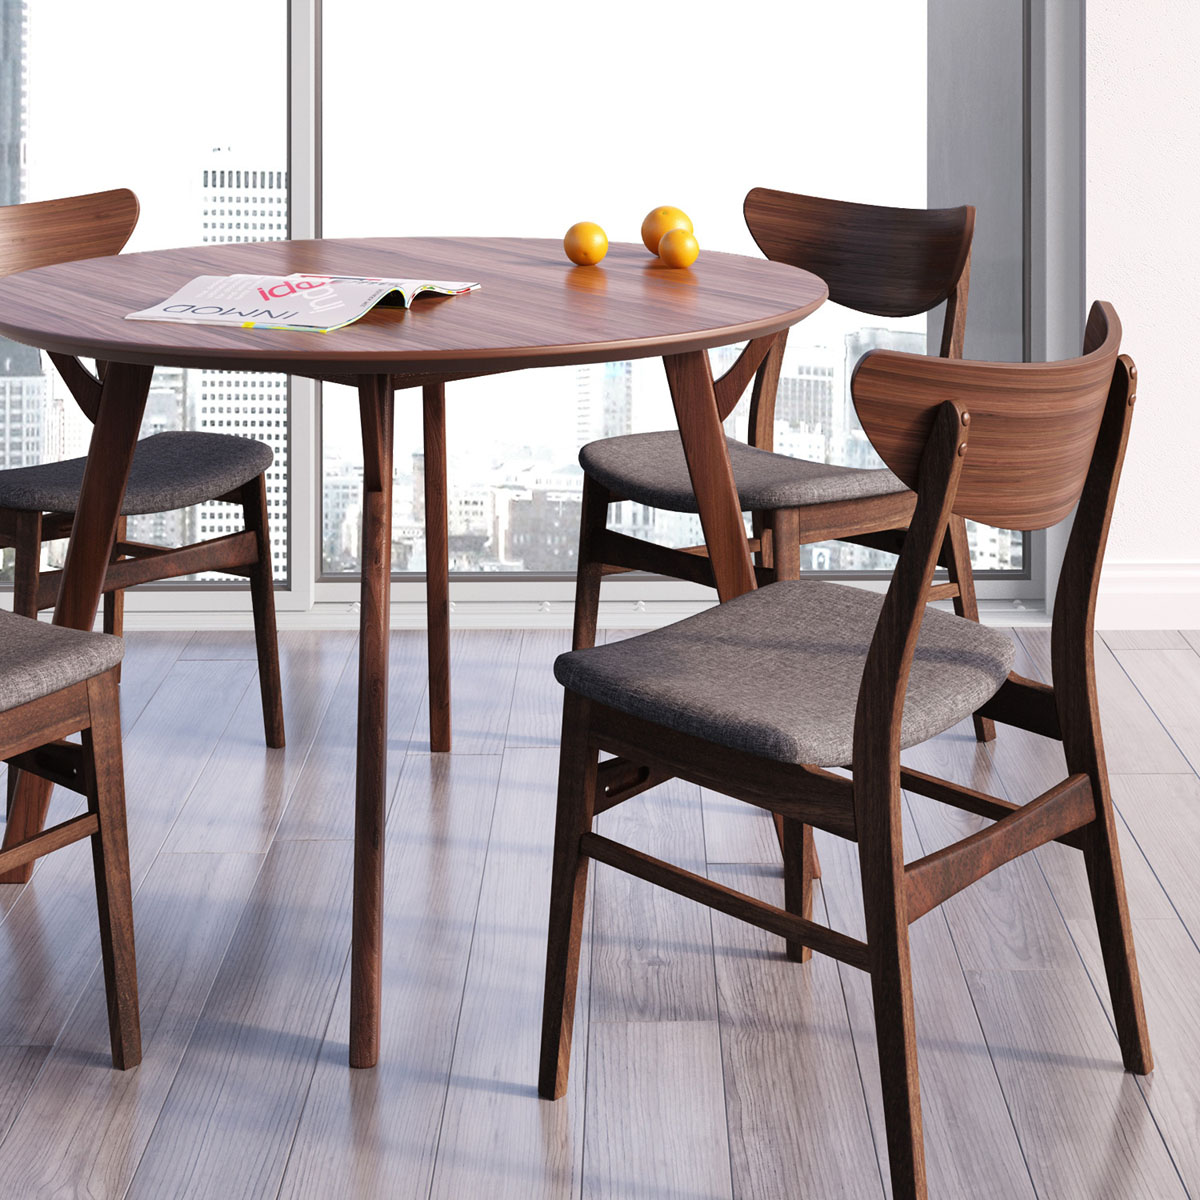 Scandi Round Dining Table - Walnut color dining table